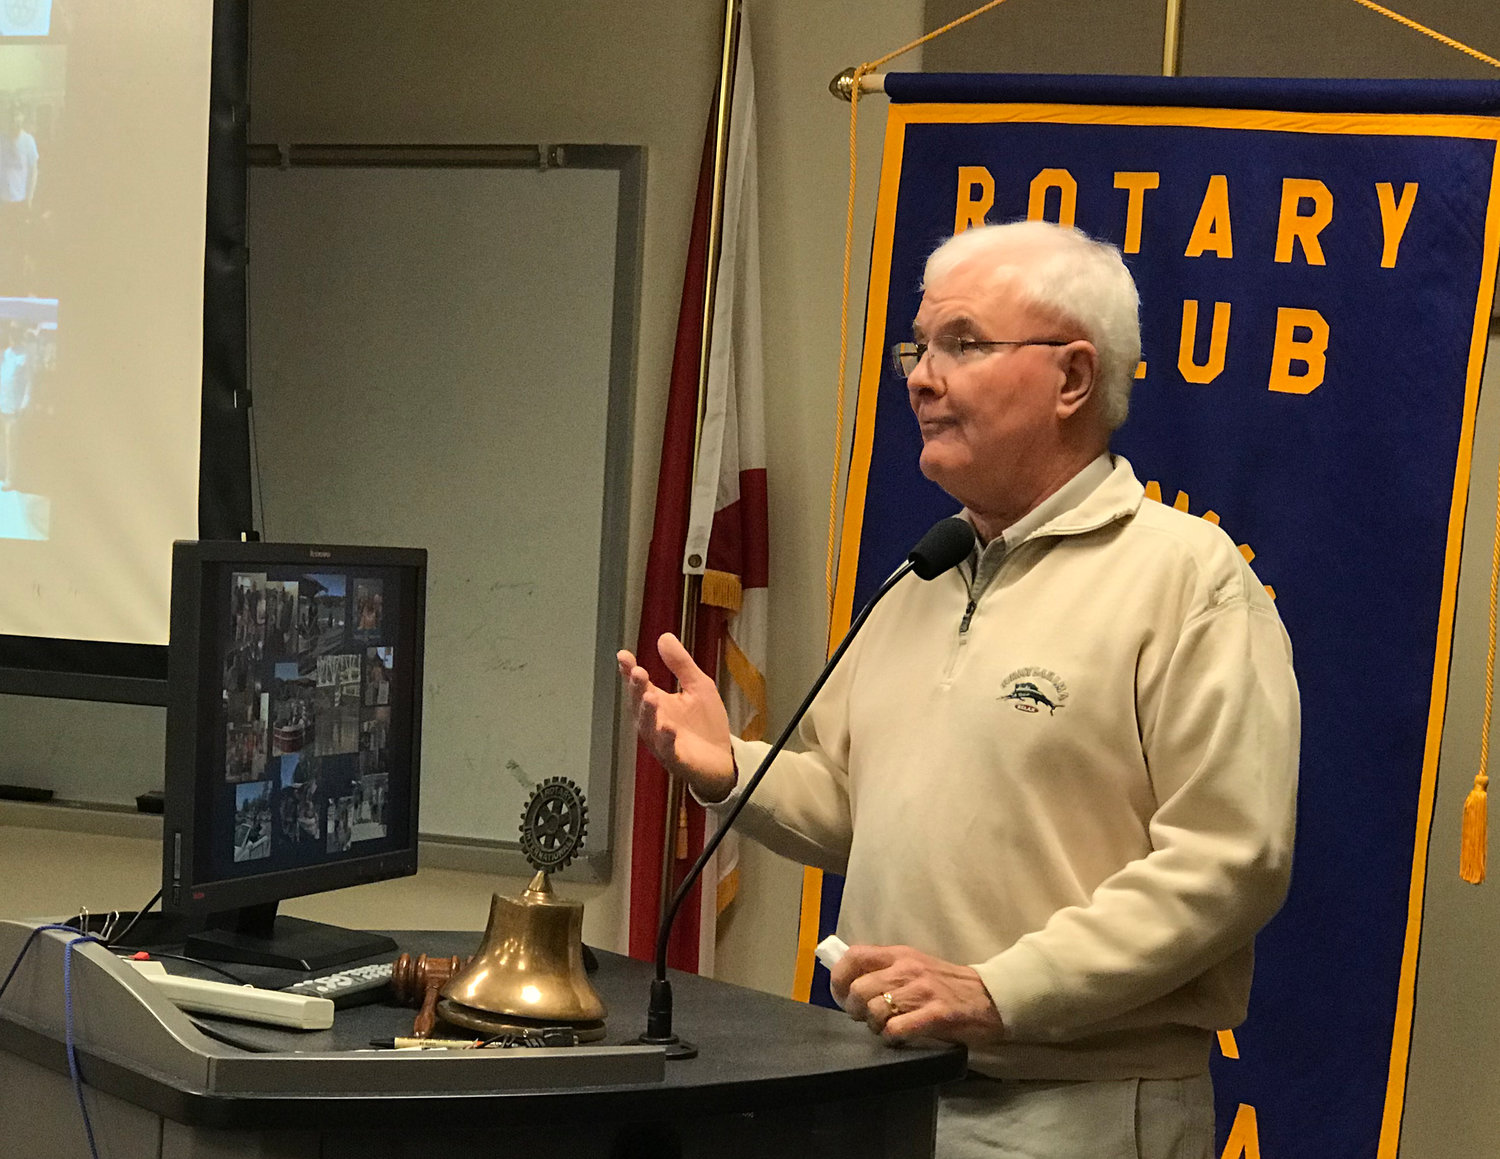 Local Vietnam veteran and author Jim Kitson spoke to the Rotary Club of Jasper on Tuesday about his experience during the Vietnam War and the impact it had on his life.